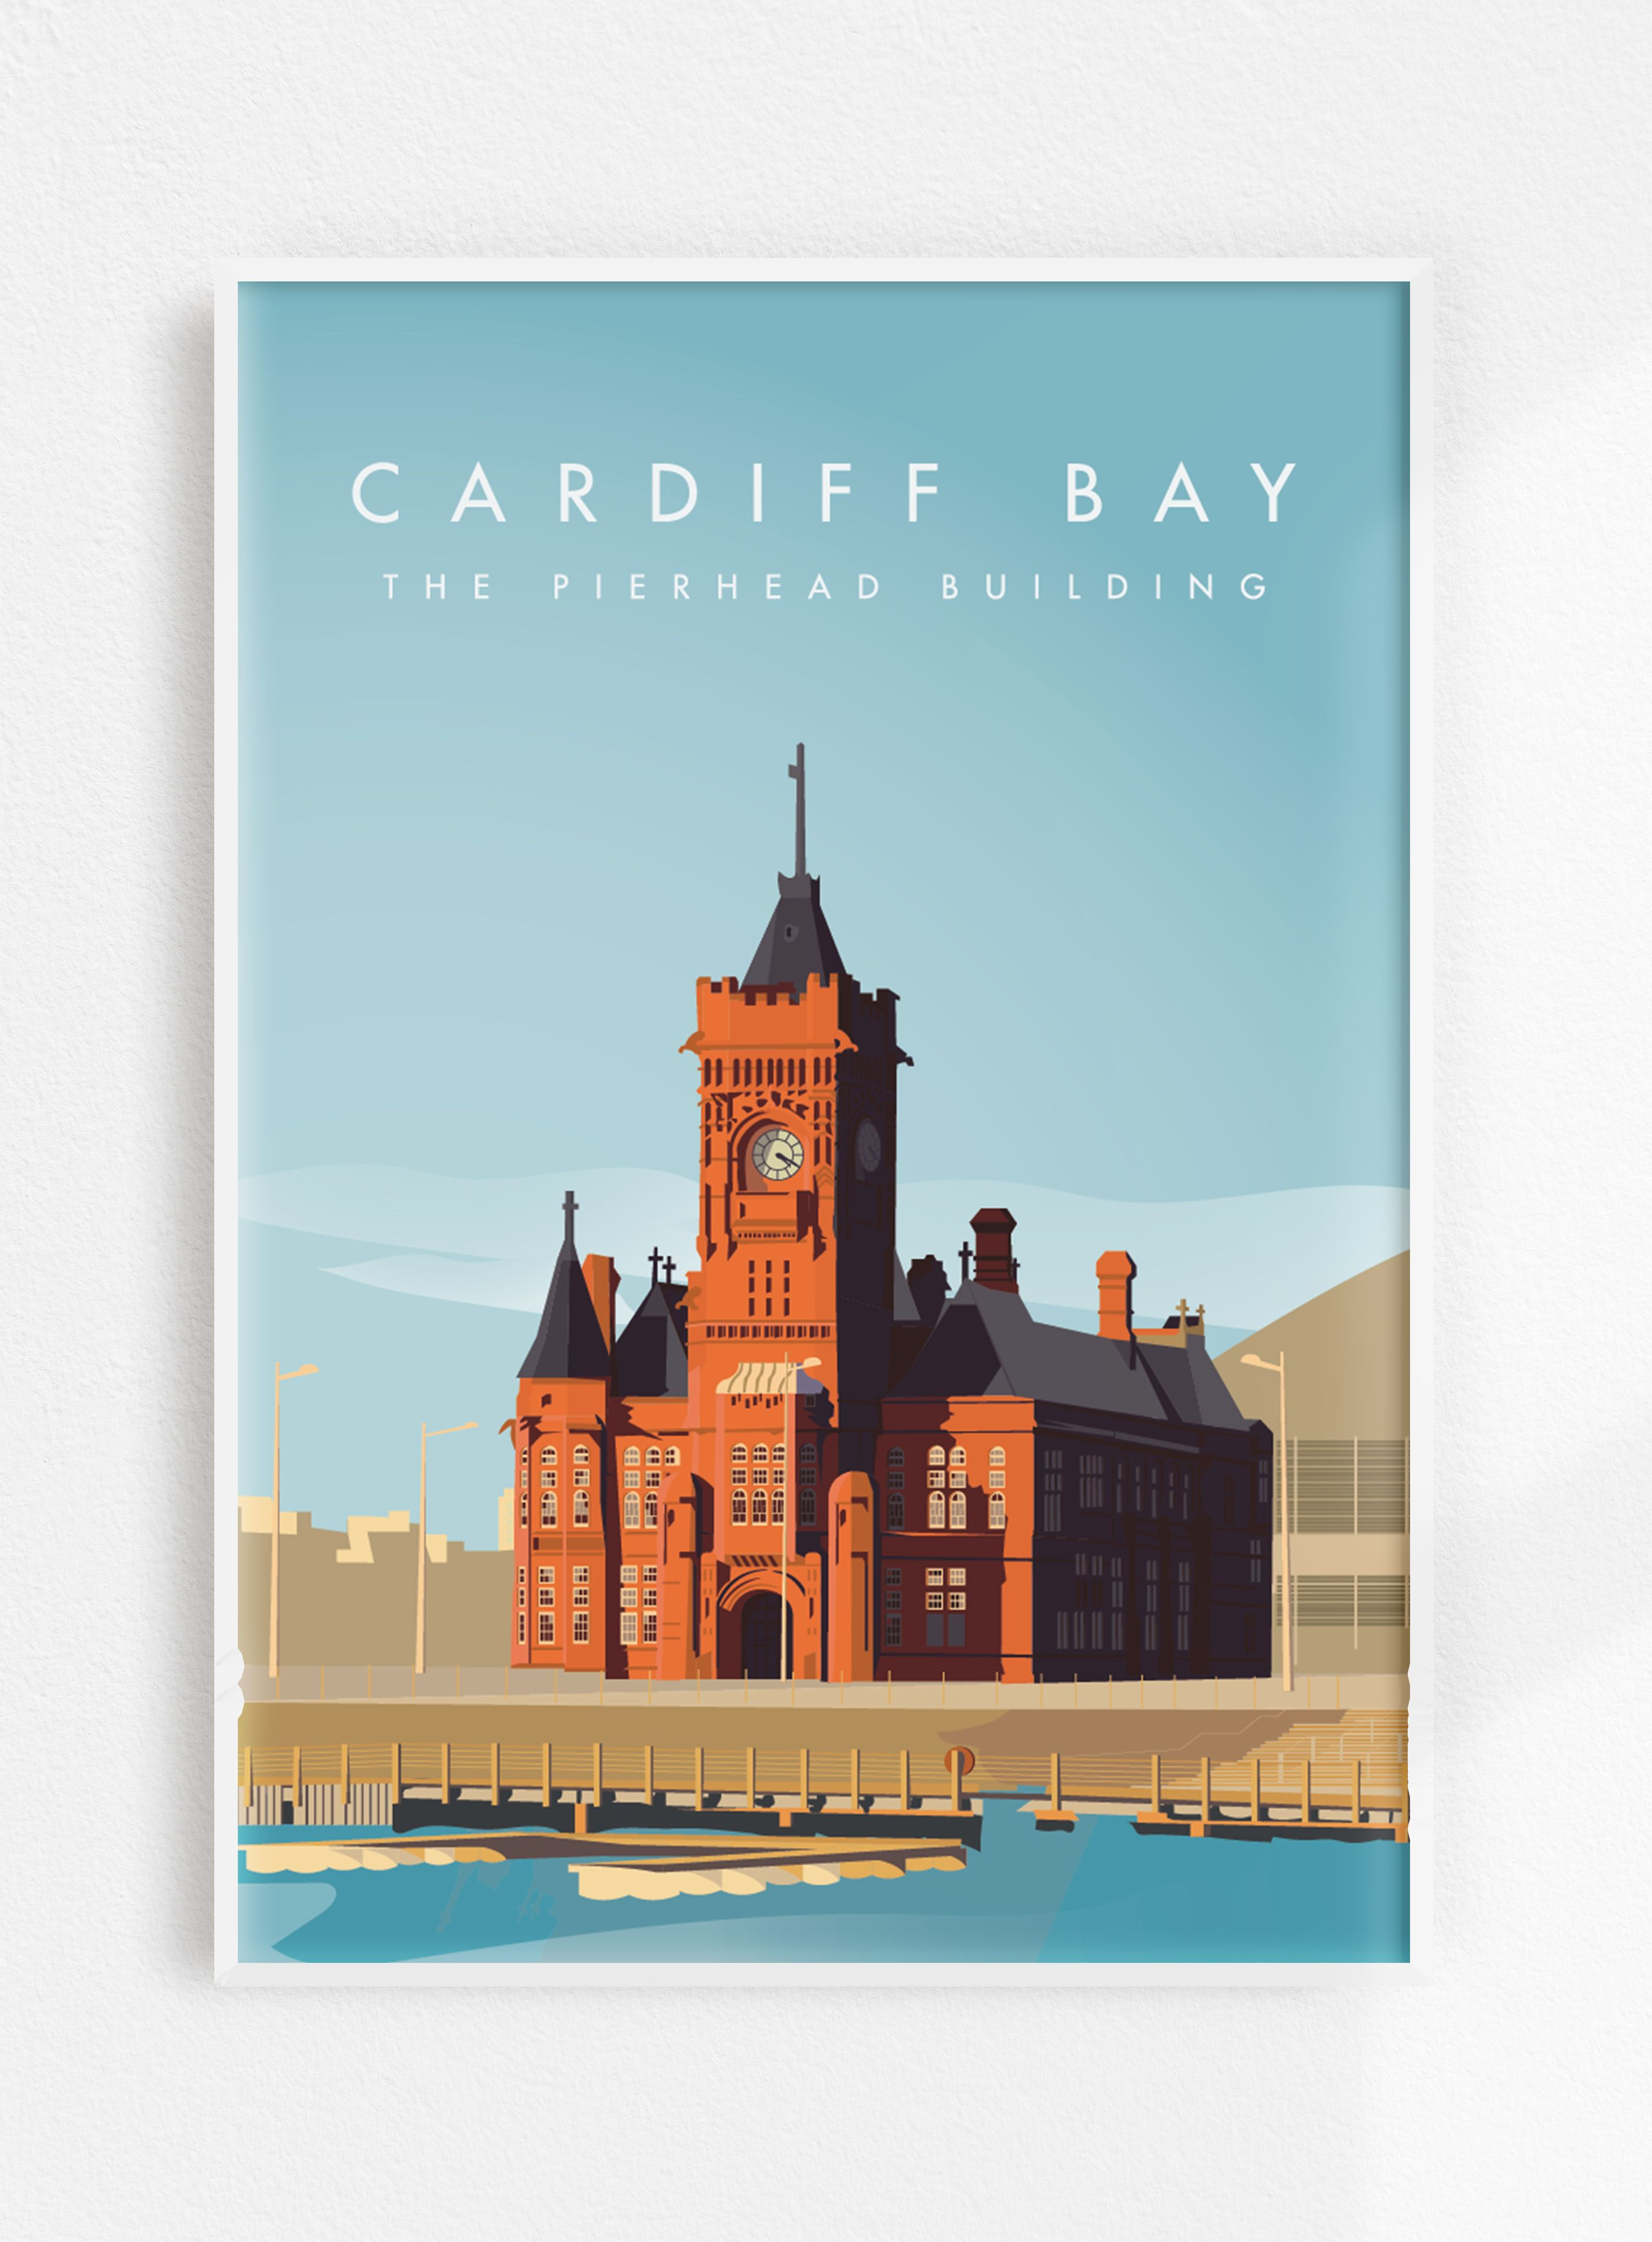 Cardiff Bay Wales The Pierhead Building Vintage Travel Poster A3 Print Original Artwork Illustration Wall Art In 2020 Travel Posters Cardiff Bay Vintage Travel Posters